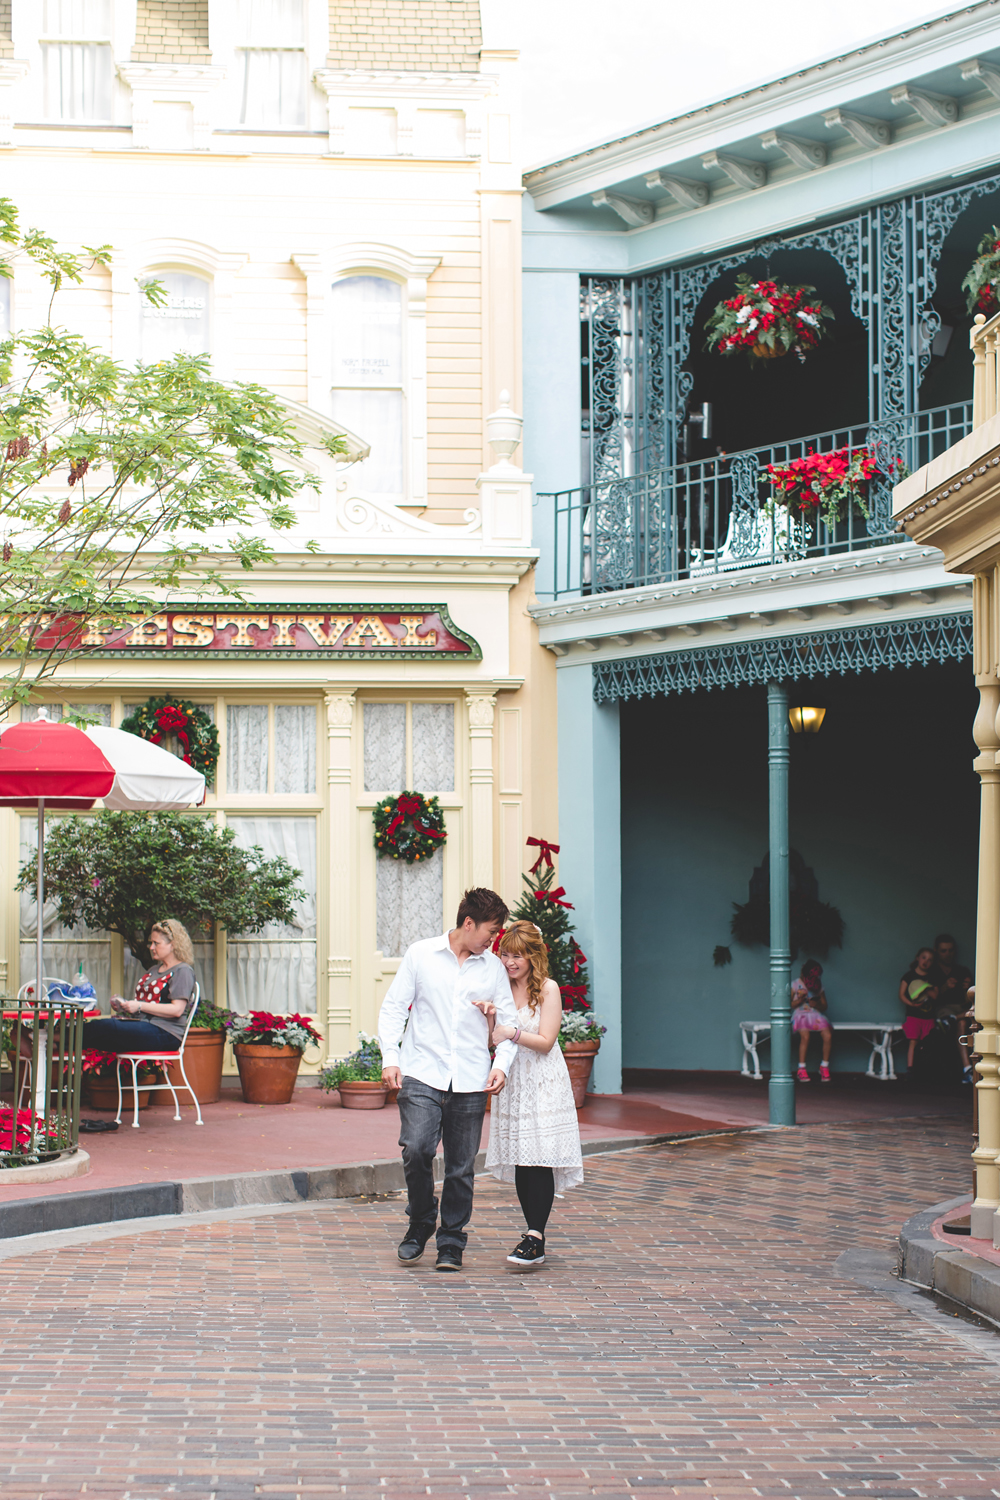 Disney Honeymoon session - Disney Engagement Photos - Disney Wedding Photographer - Destination Orlando Wedding Photographer - Jaime DiOrio (7).jpg